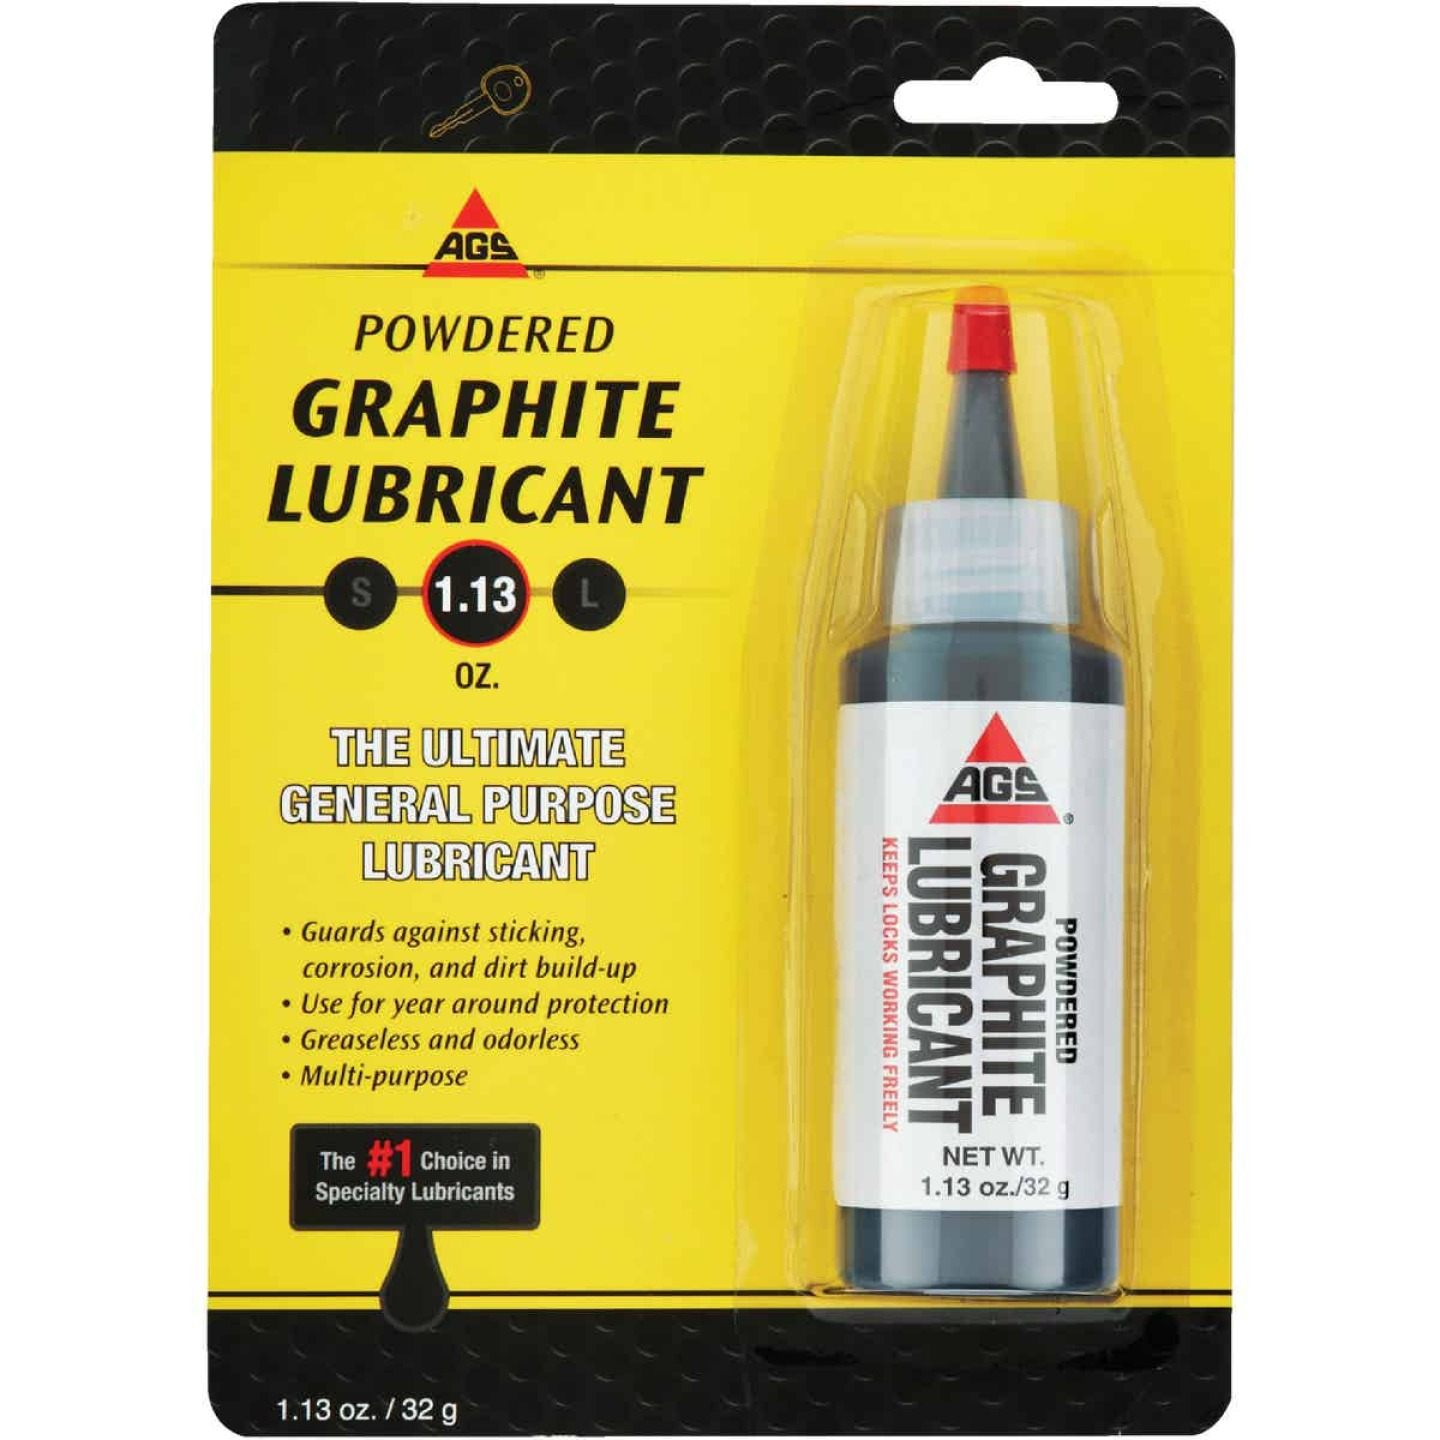 AGS 1.13 Oz. Bottle Powdered Graphite Dry Lubricant Image 1